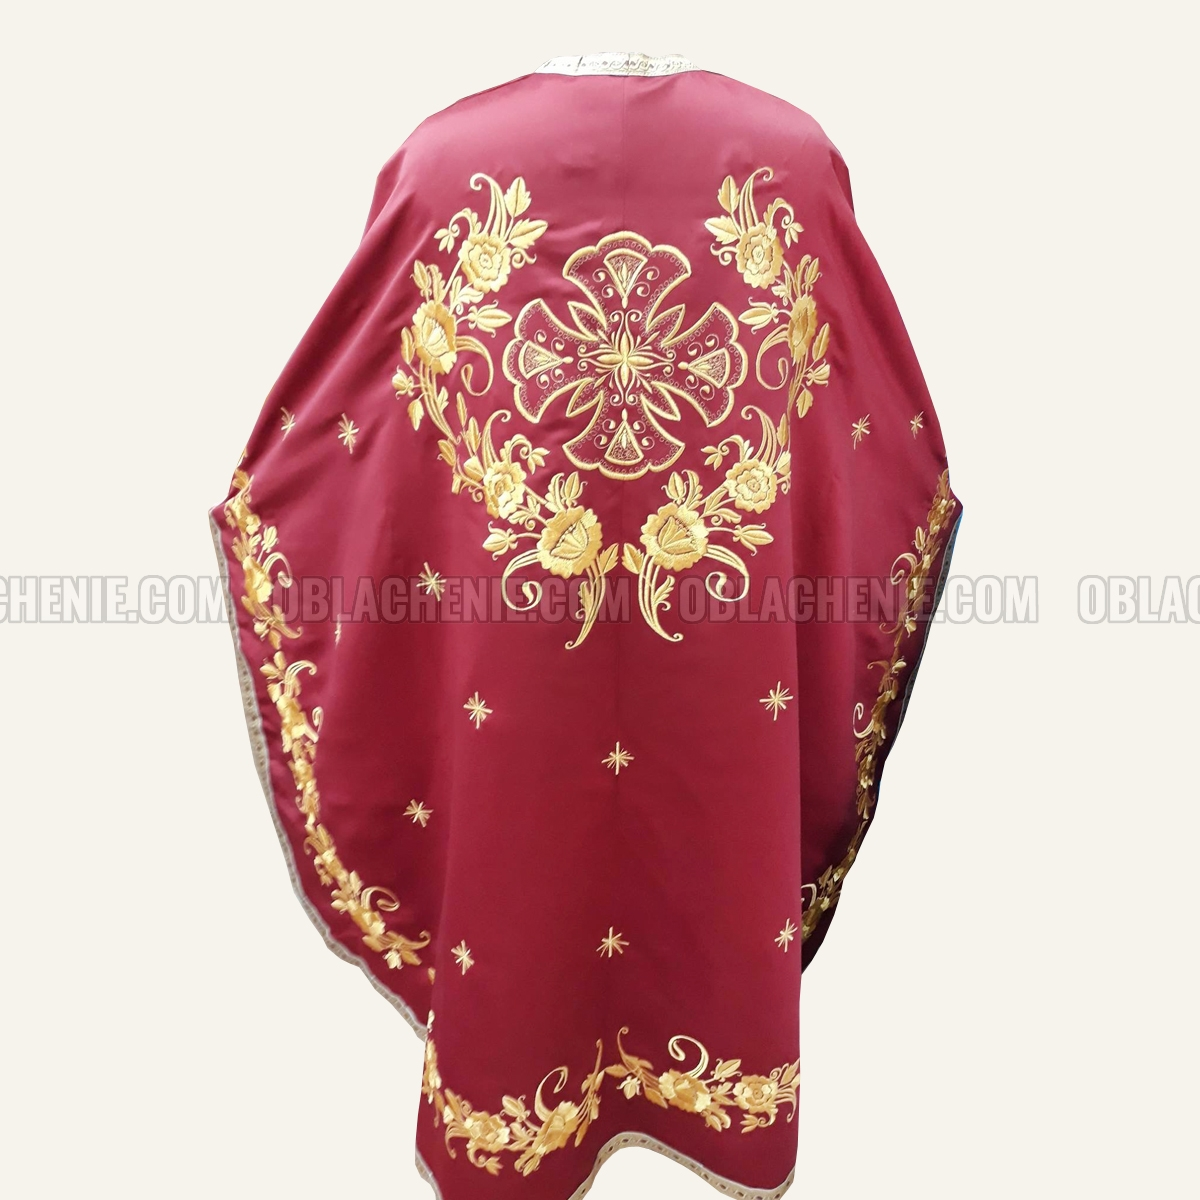 Embroidered priest's vestments 10262